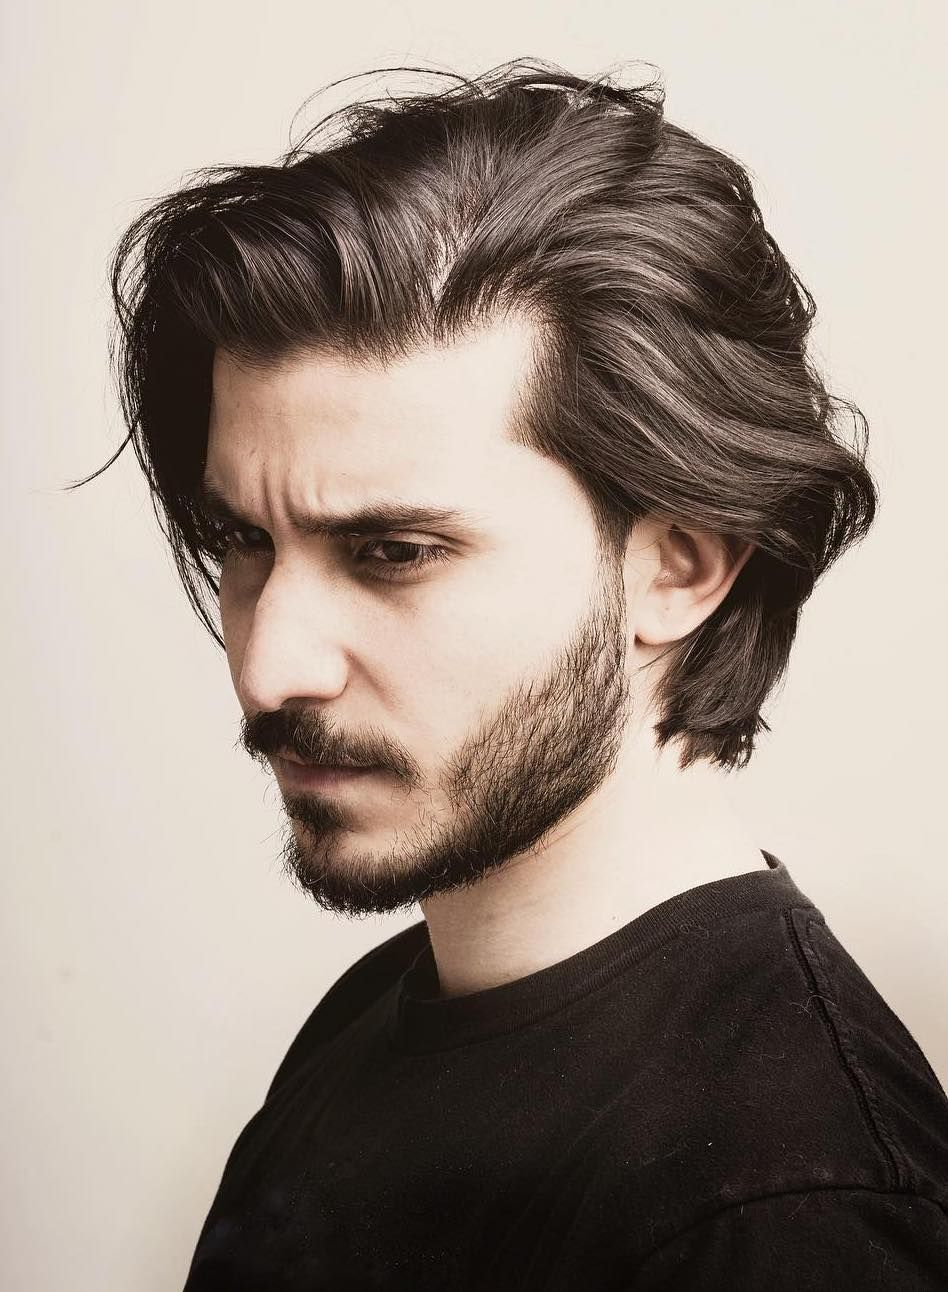 Handsome And Cool – The Latest Men's Hairstyles for 2019 ...